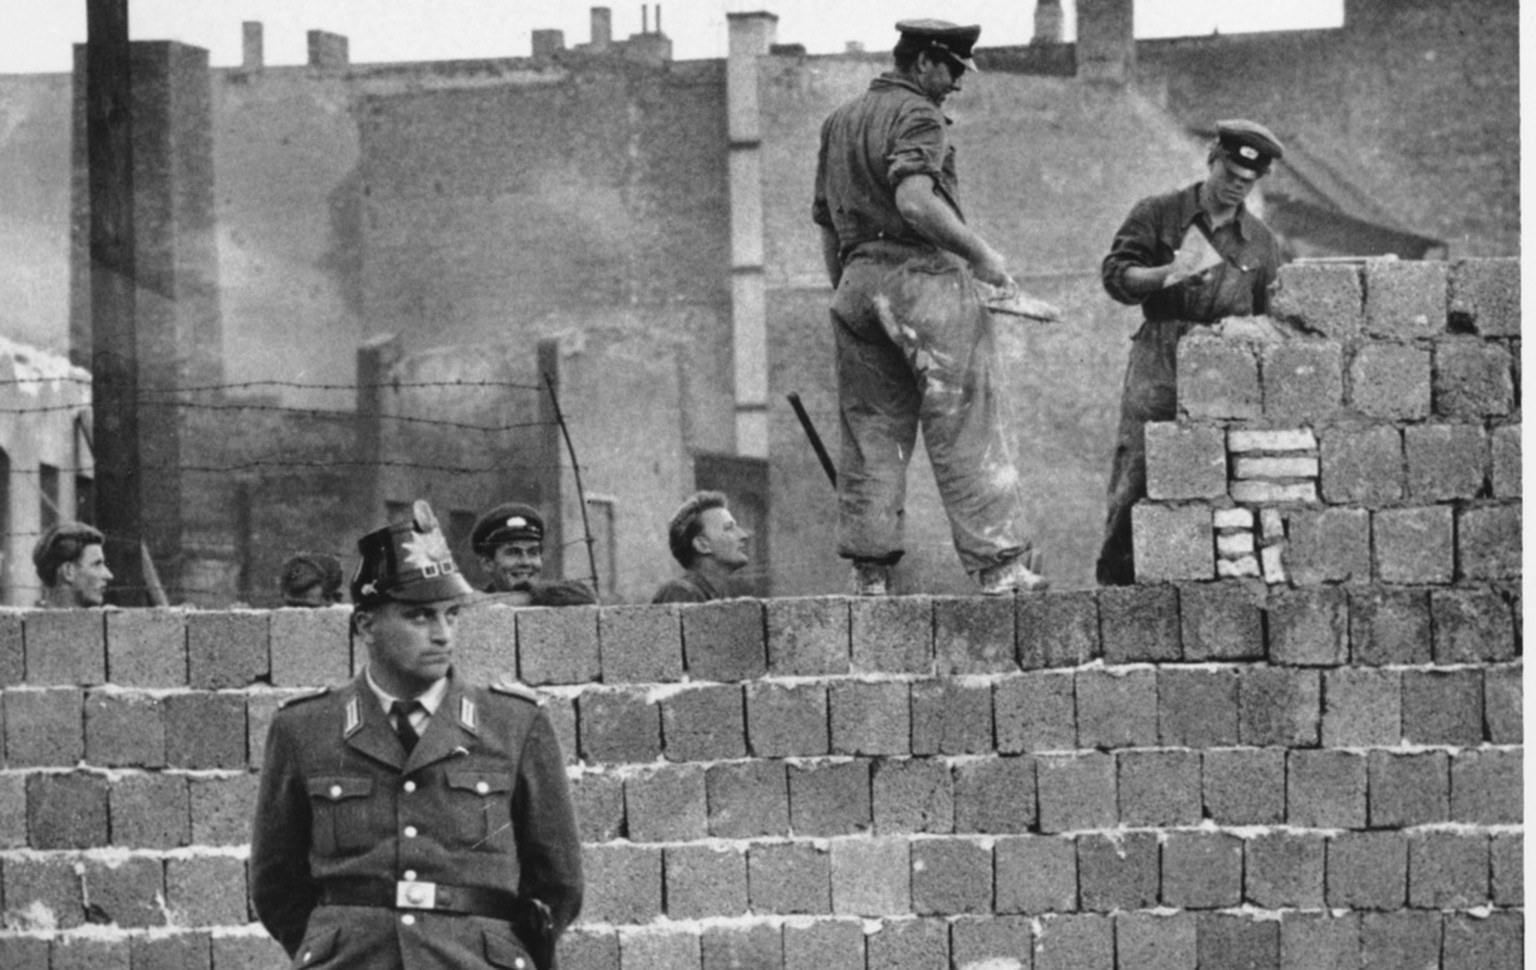 A West Berlin guard stands in front of the concrete wall dividing East and West Berlin at Bernauer Strasse as East Berlin workmen add blocks to the wall to increase the height of the barrier, Oct. 7, 1961. Berlin on Wednesday, Aug. 13, 2008 sees the 47th anniversary of the beginning of the erection of the so-called Berlin Wall.  (AP Photo)